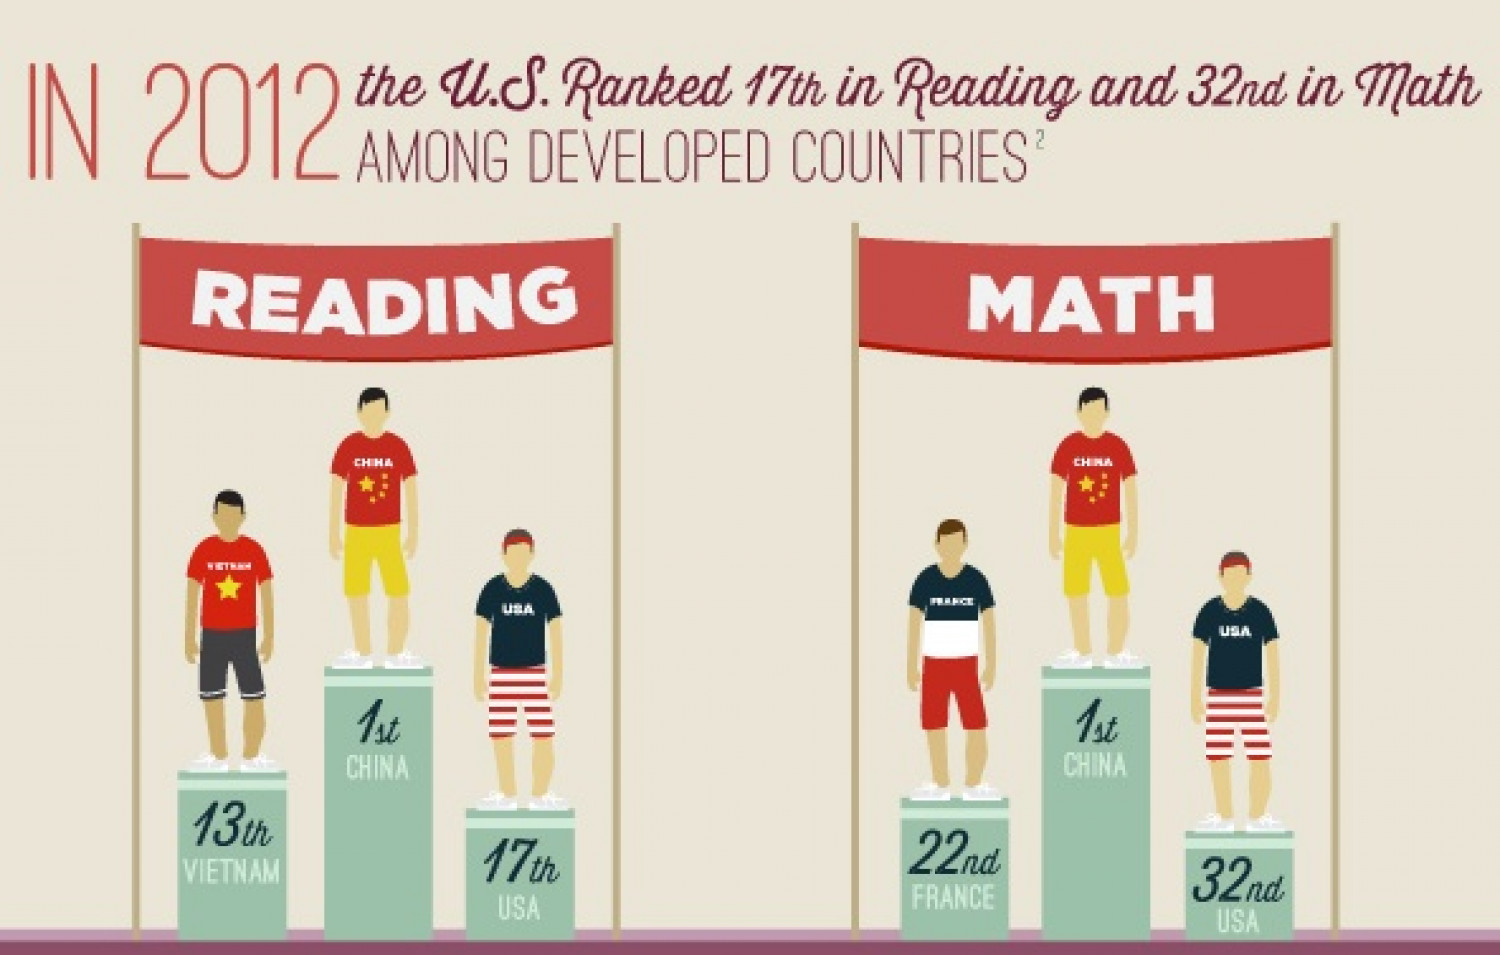 The Common Core Standards Infographic